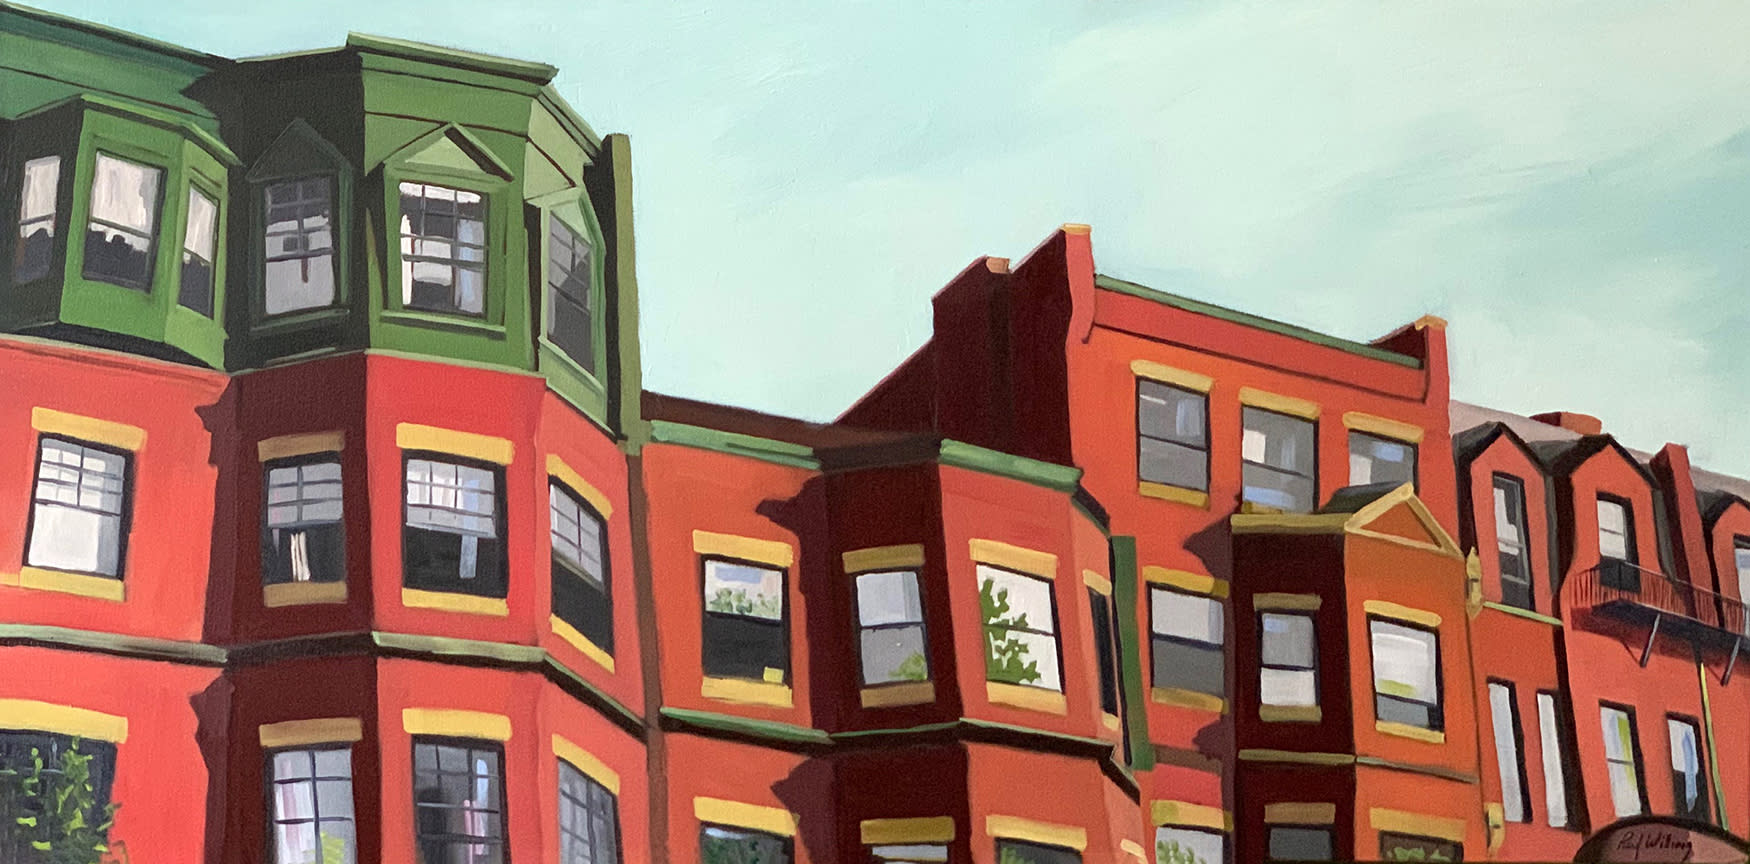 Back bay roofline by paul william artist wcl7qg